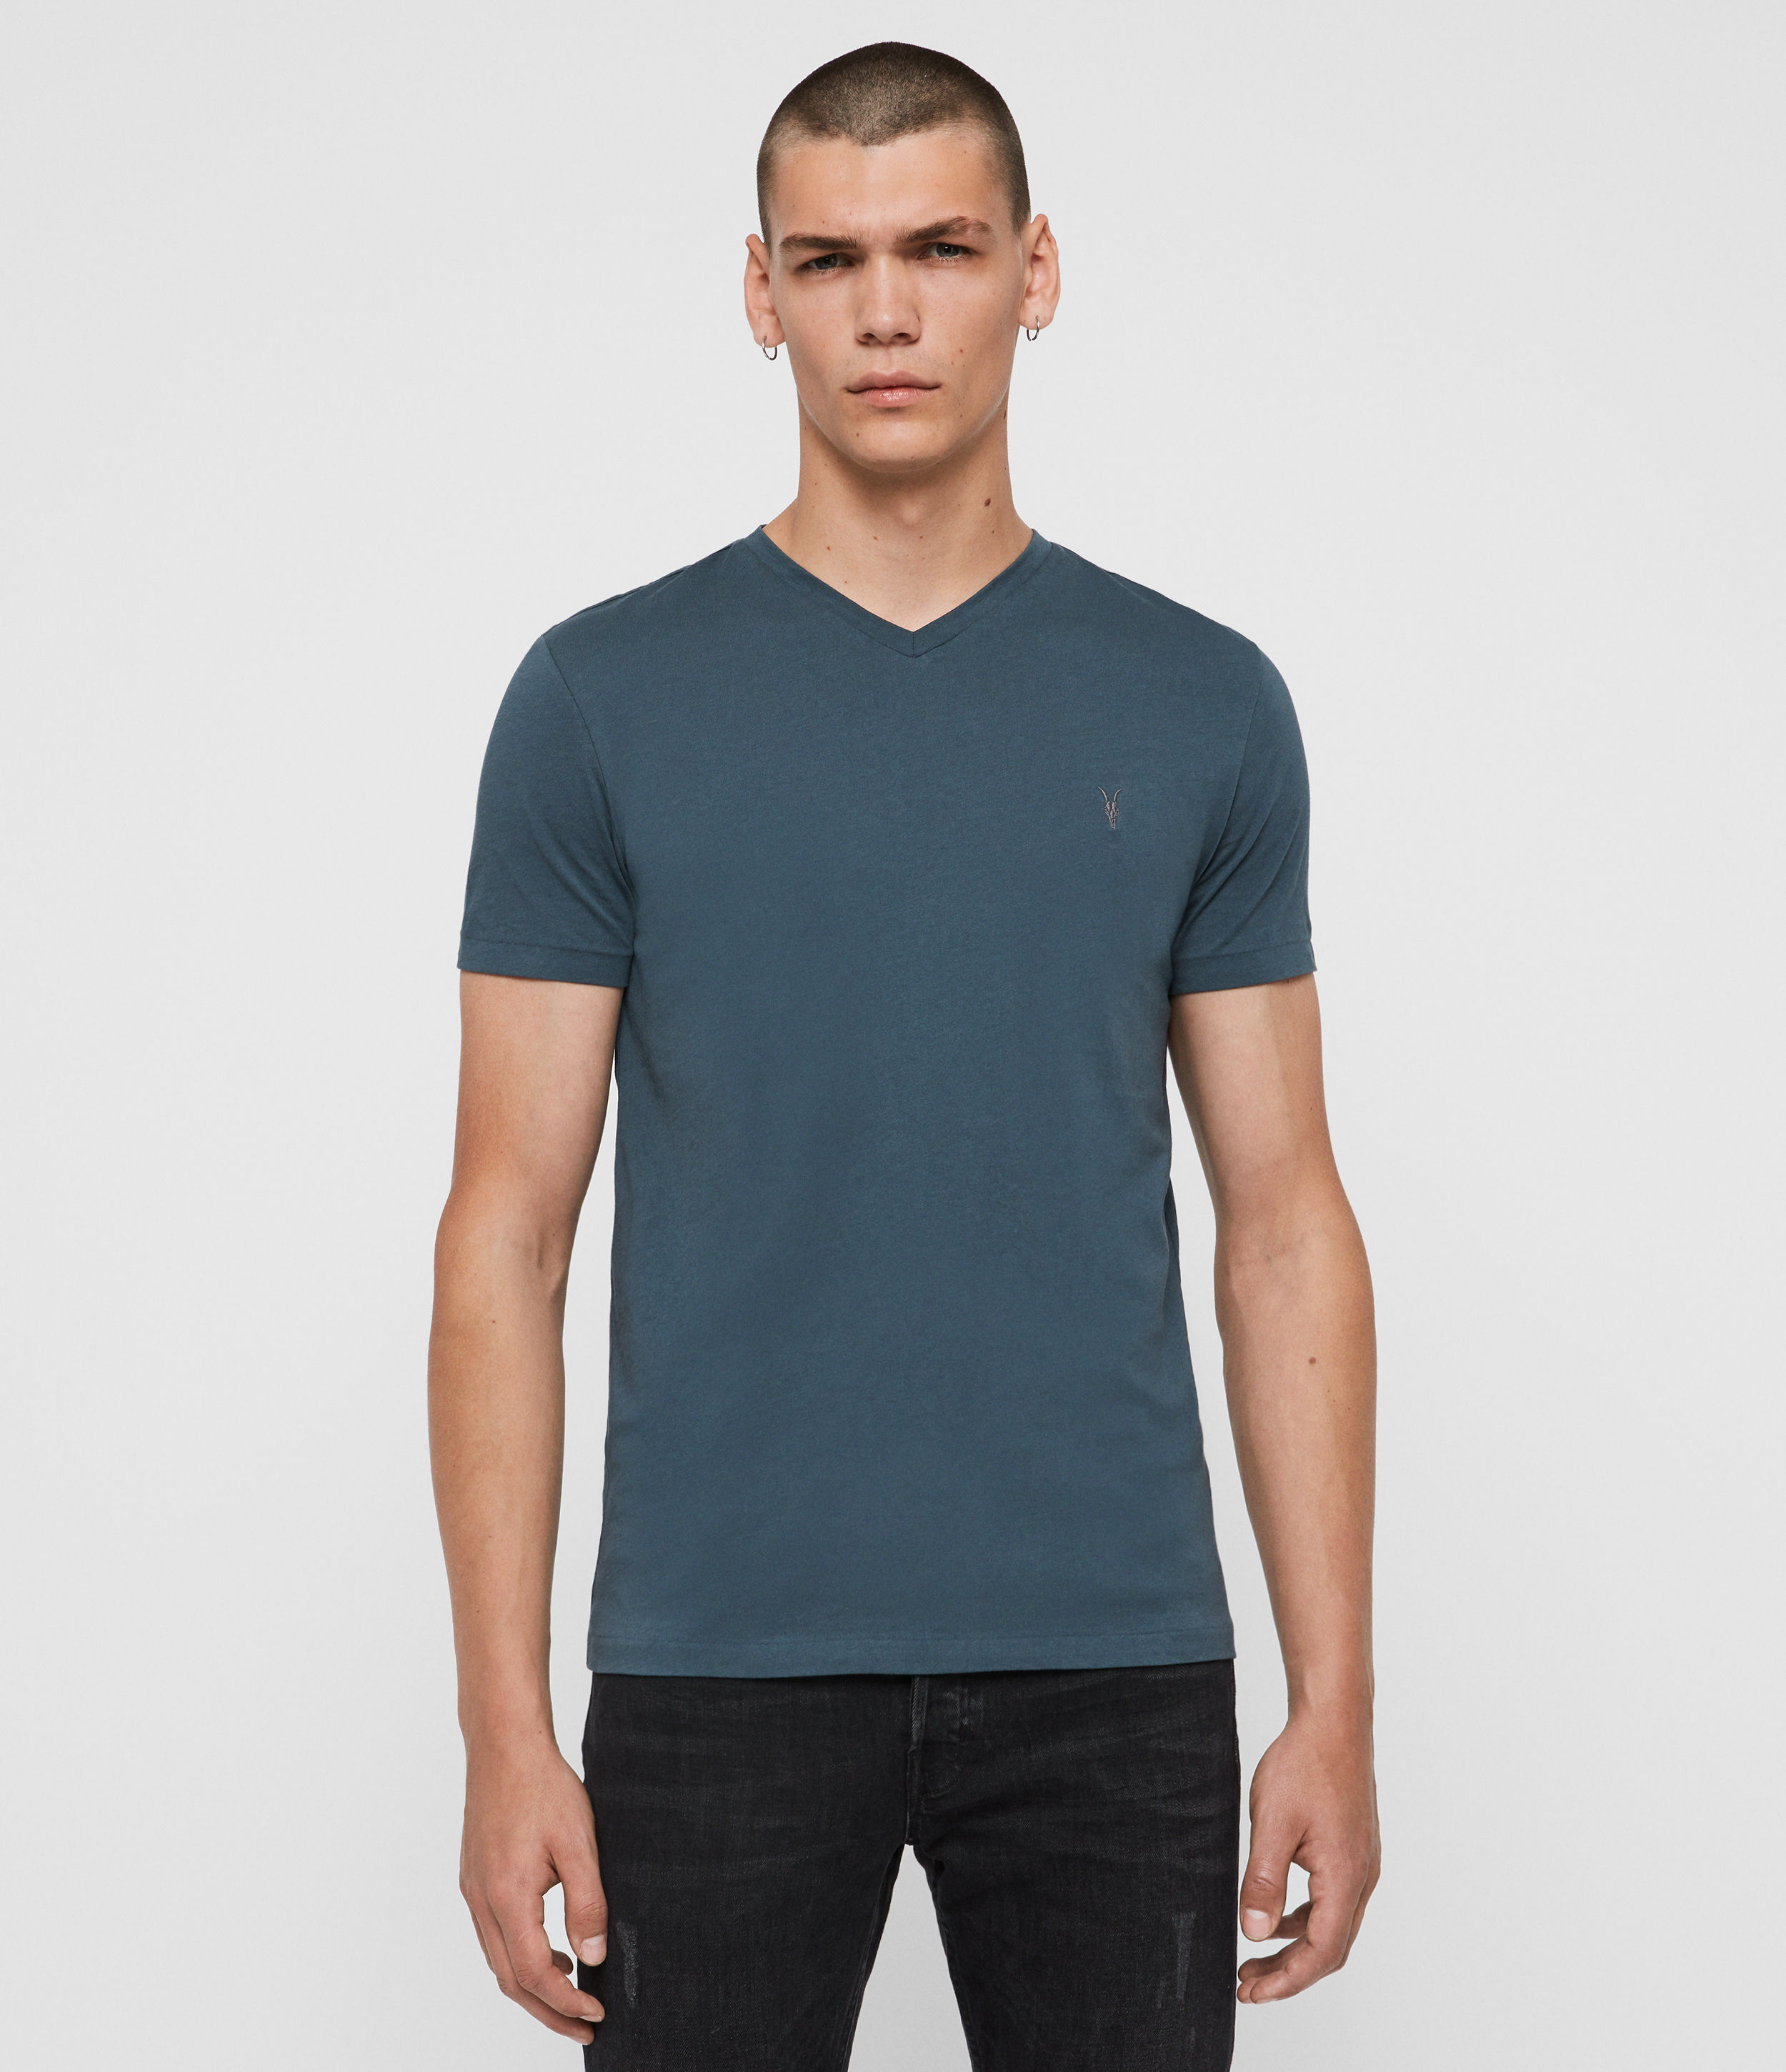 AllSaints Tonic V-Neck T-Shirt